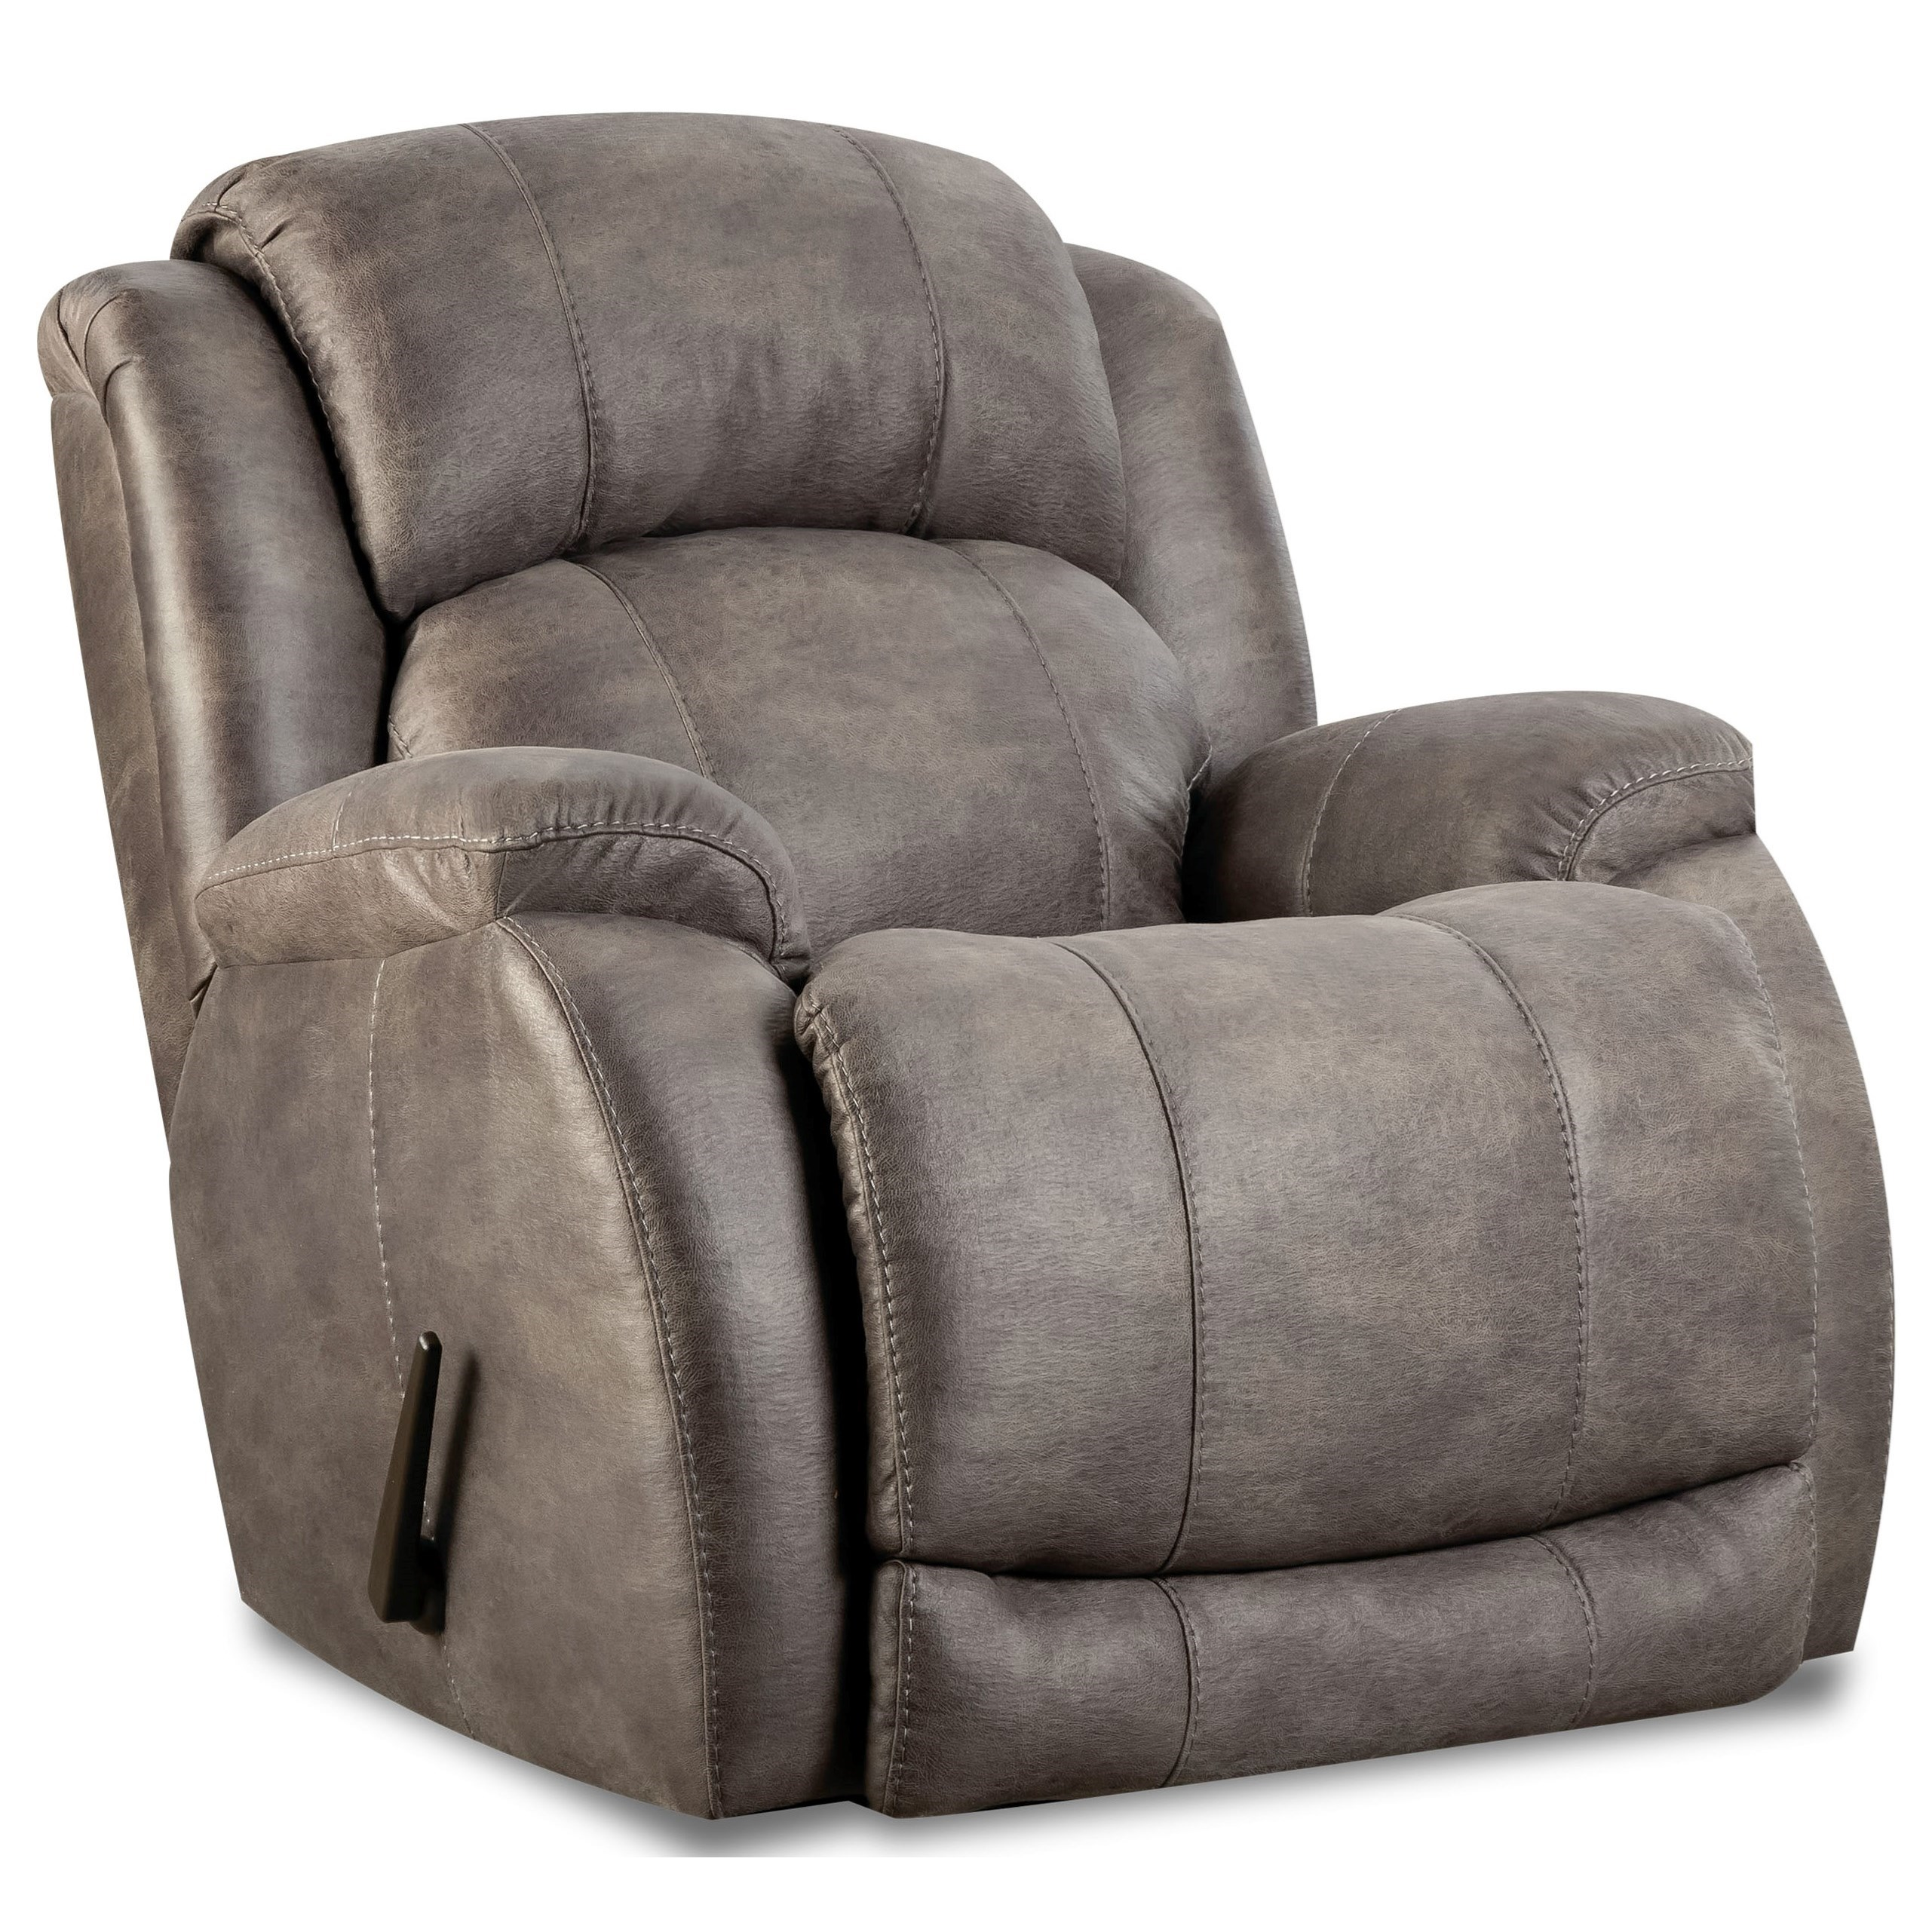 Denali Power Rocker Recliner by HomeStretch at Suburban Furniture